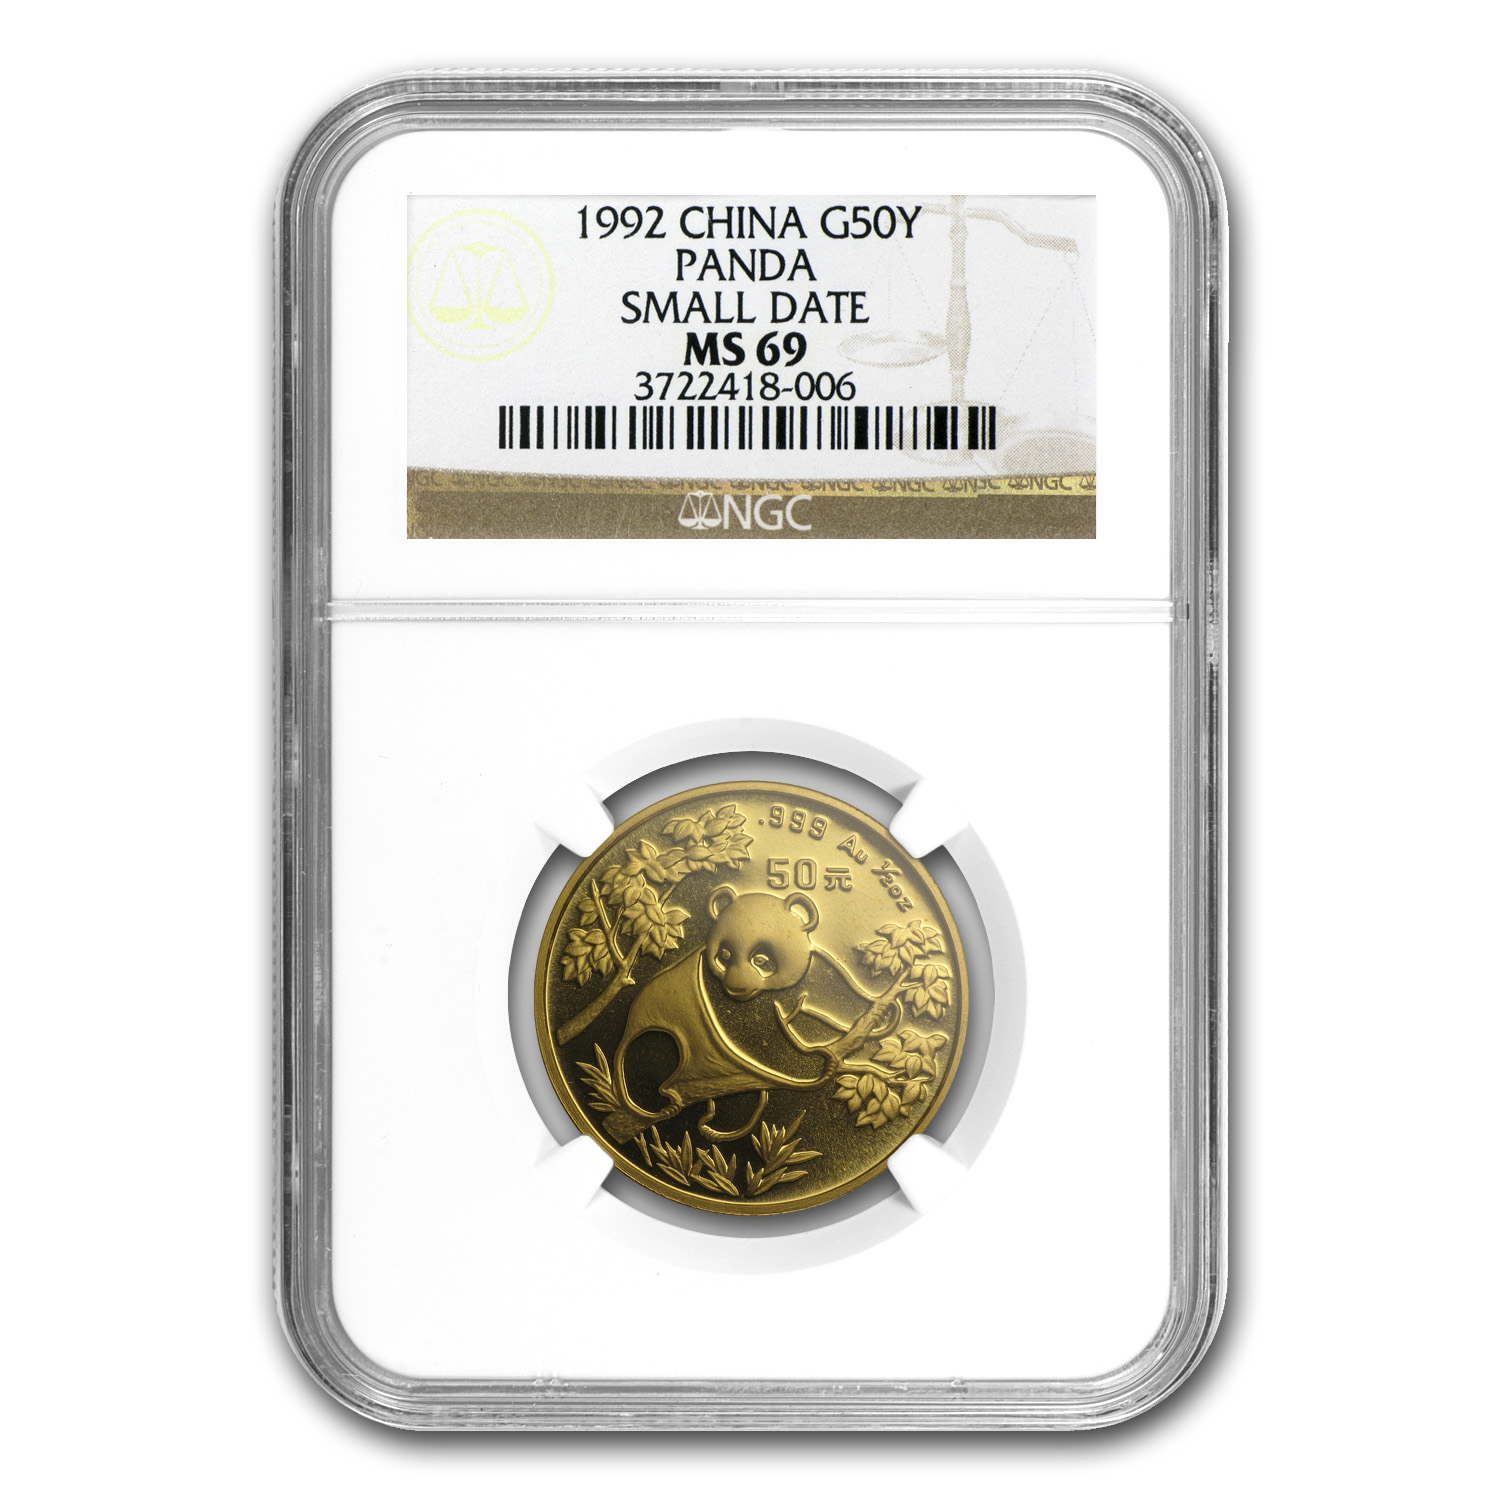 1992 1/2 oz Gold Chinese Panda Small Date MS-69 NGC